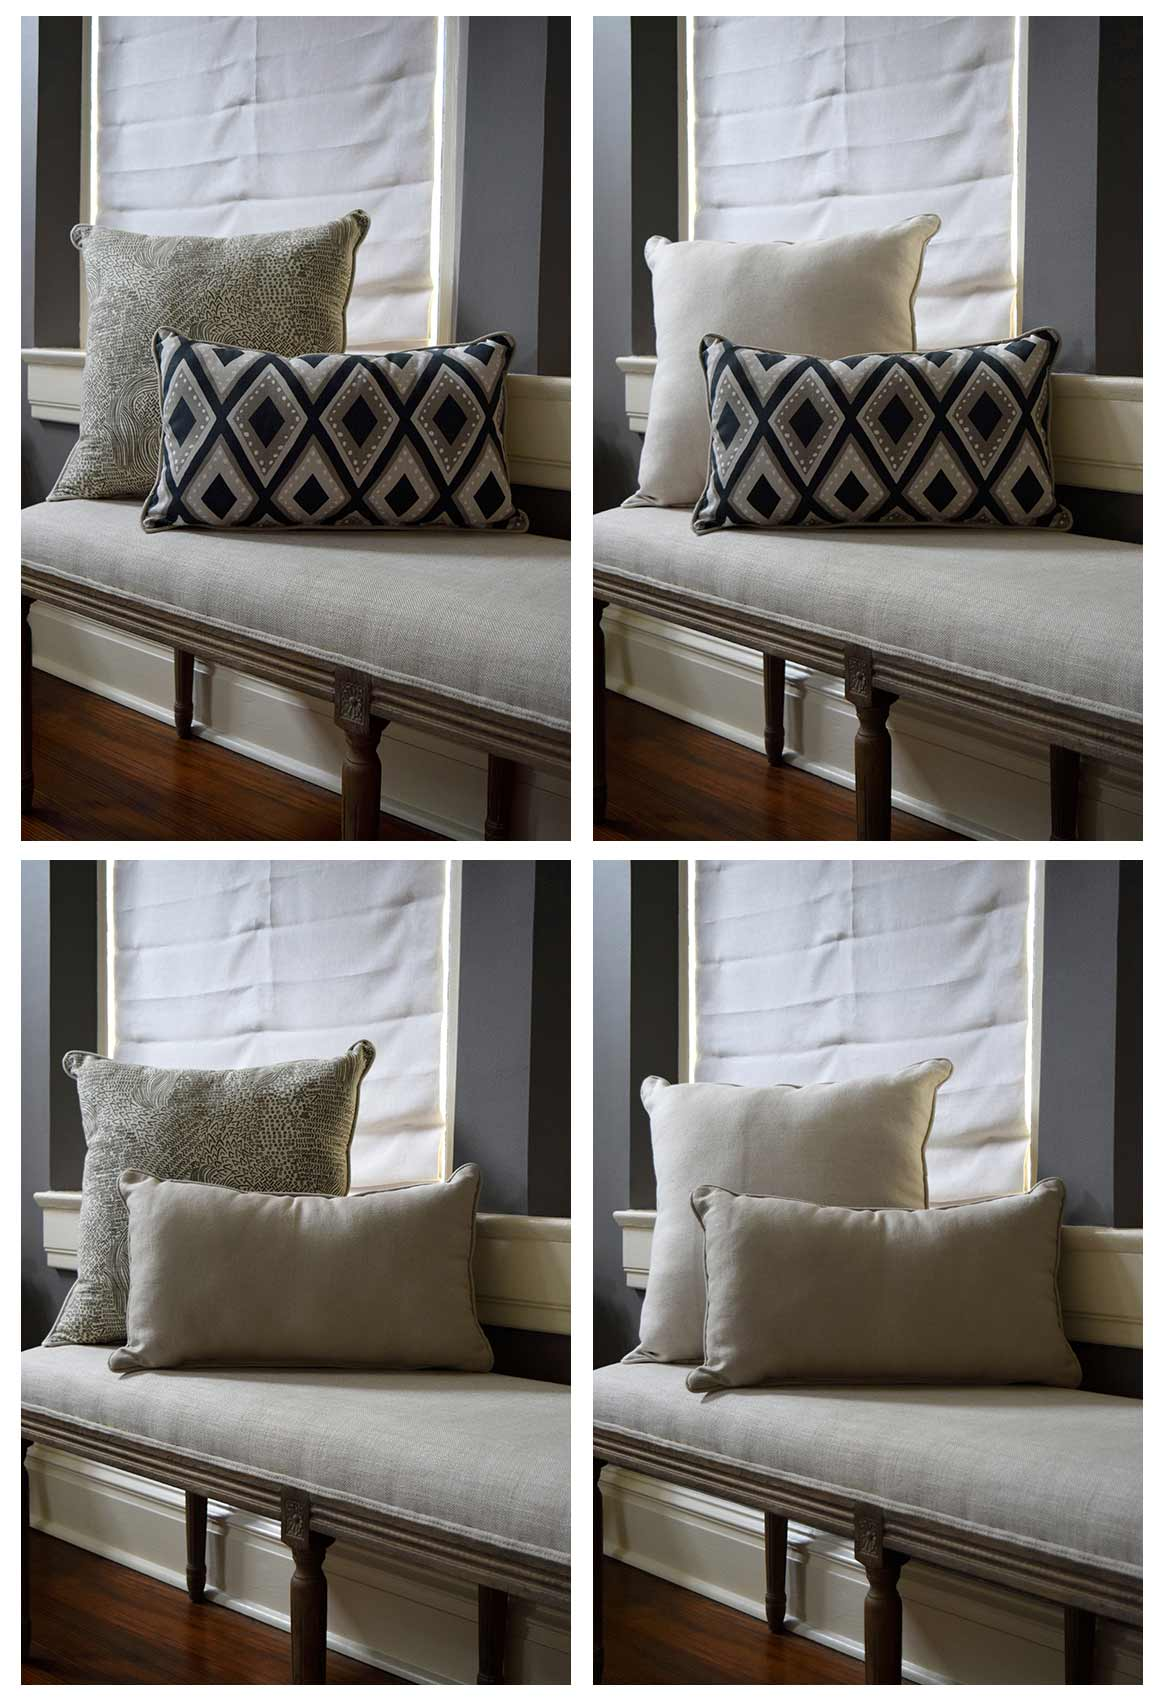 4 Looks with 2 Reversible Pillows